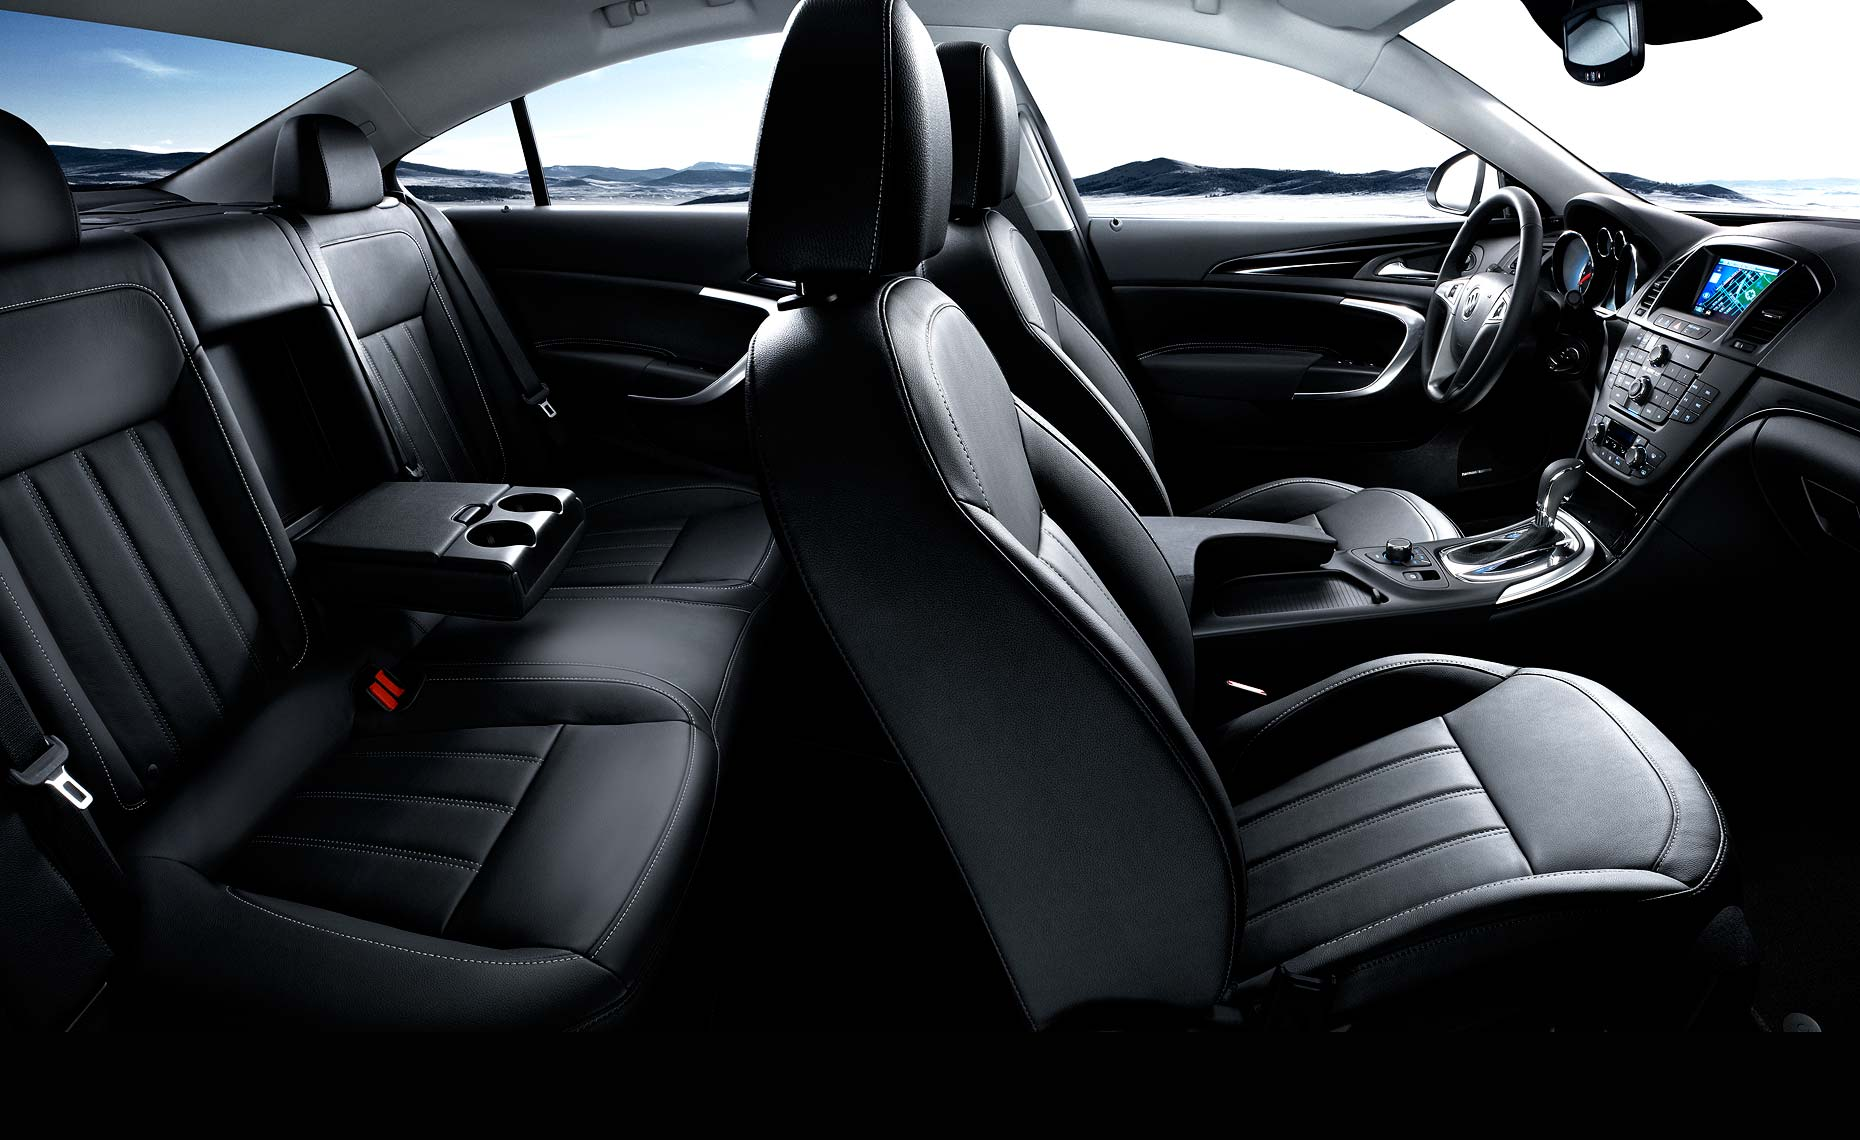 2011 buick regal-full interior.jpg